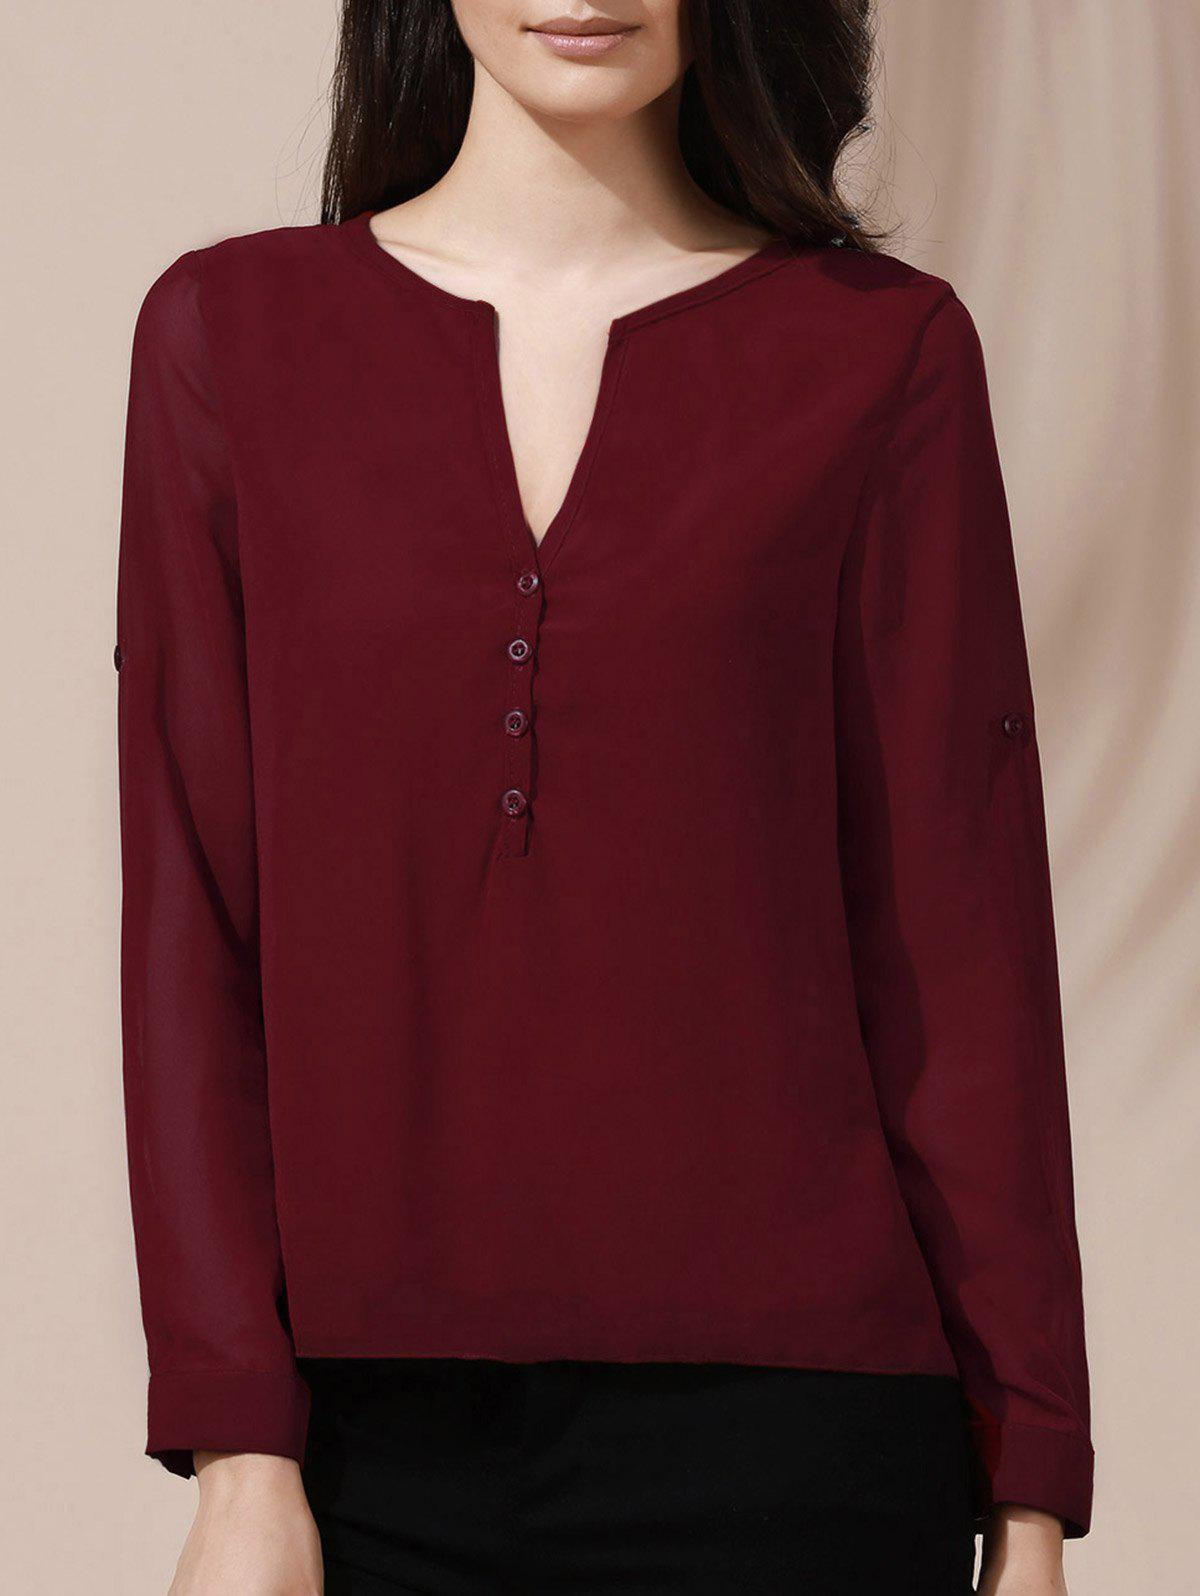 V-Neck Button Design Long Sleeve Blouse For Women - WINE RED L